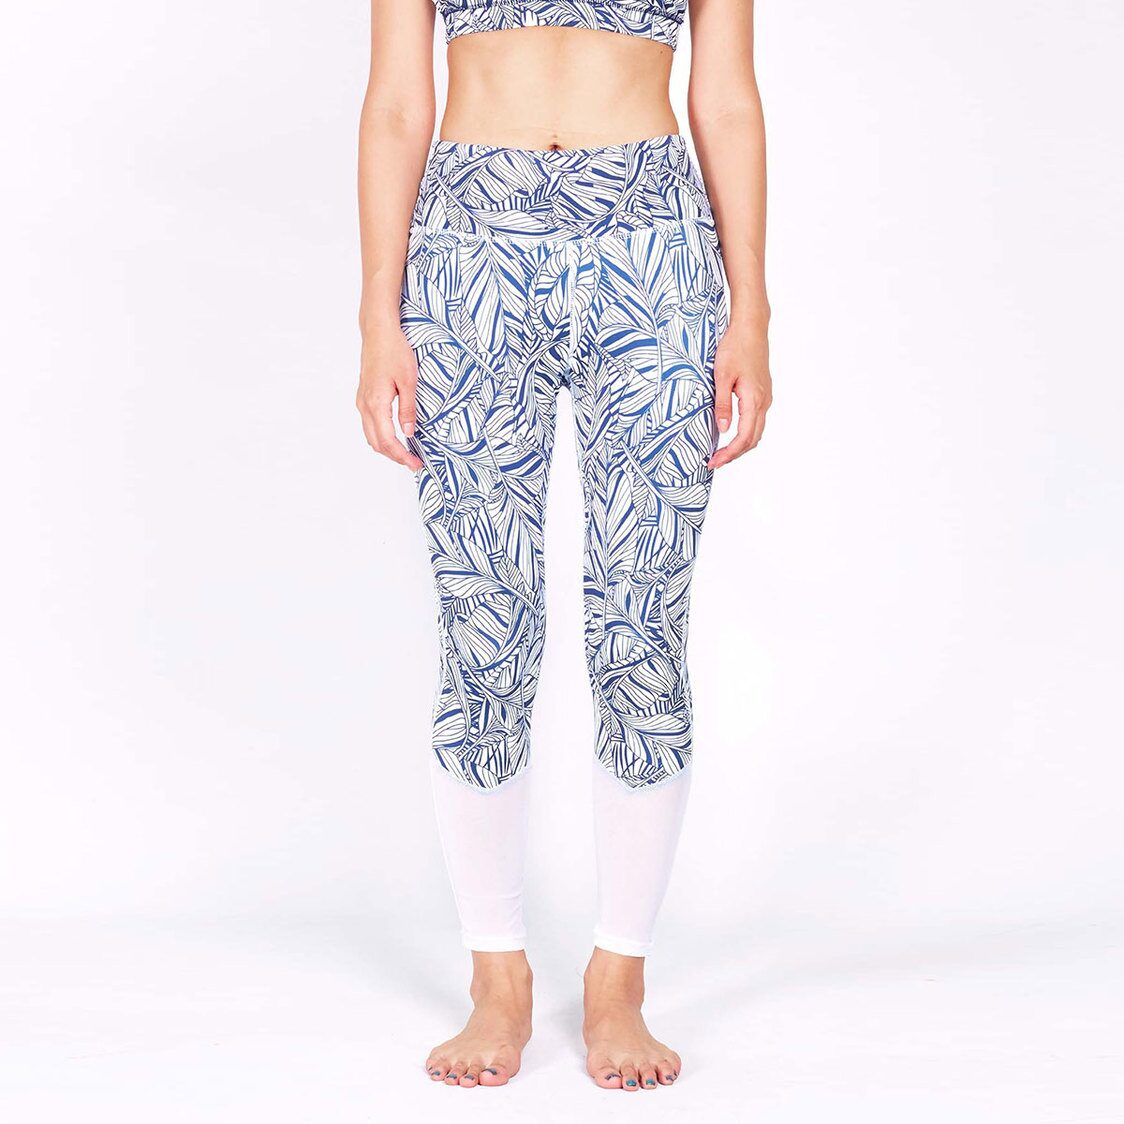 HYPE Blocking Leggings with Keeperband in Mesh Liberty Print